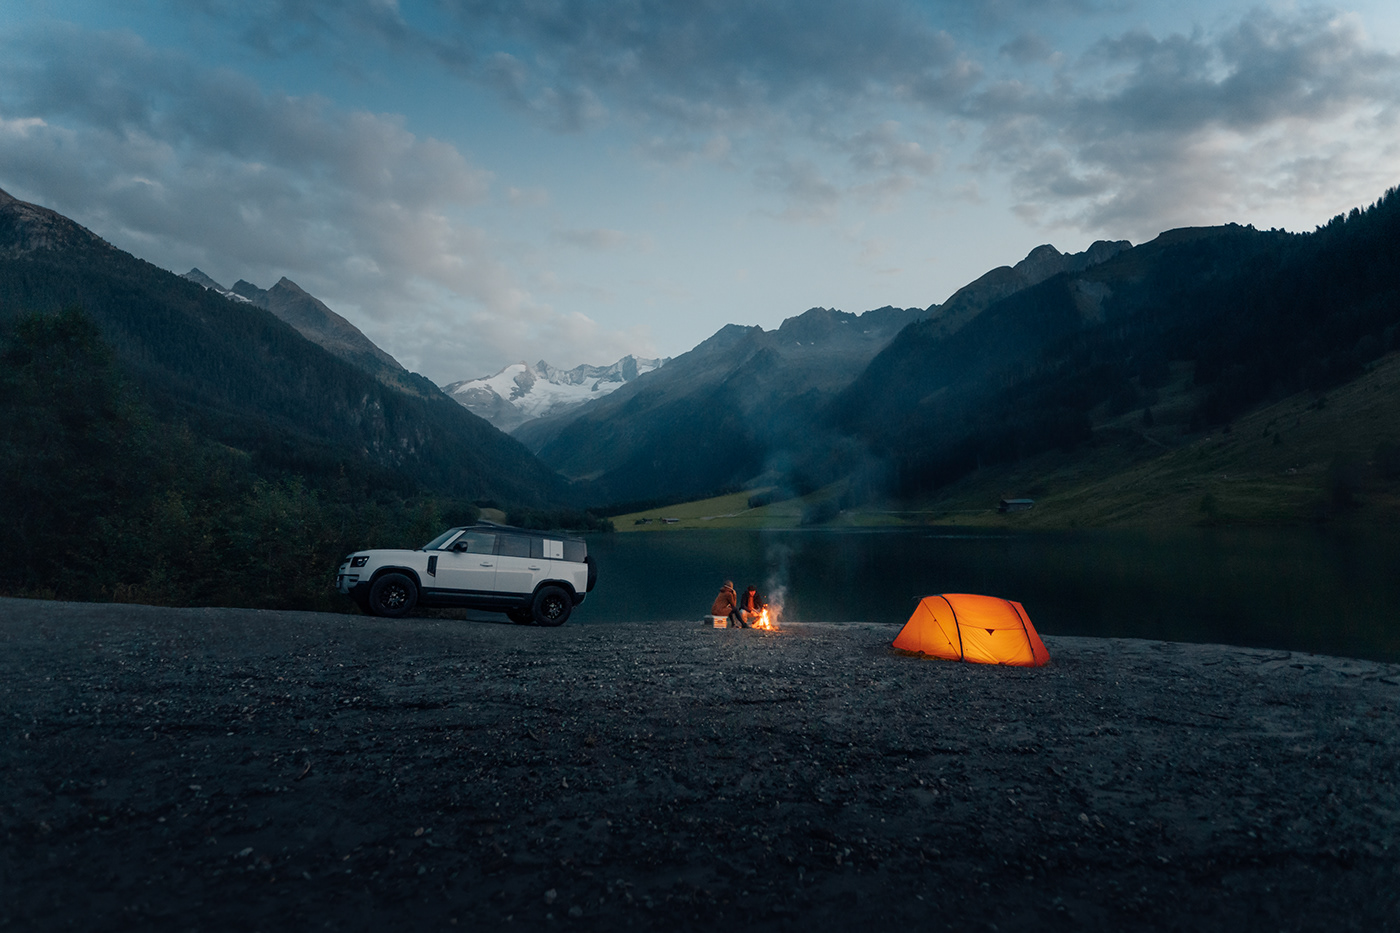 austrian mountains automotive   Land Rover land rover defender Offroad offroad vehicle RoadTrip Automotive Photography alpine automotivephotography